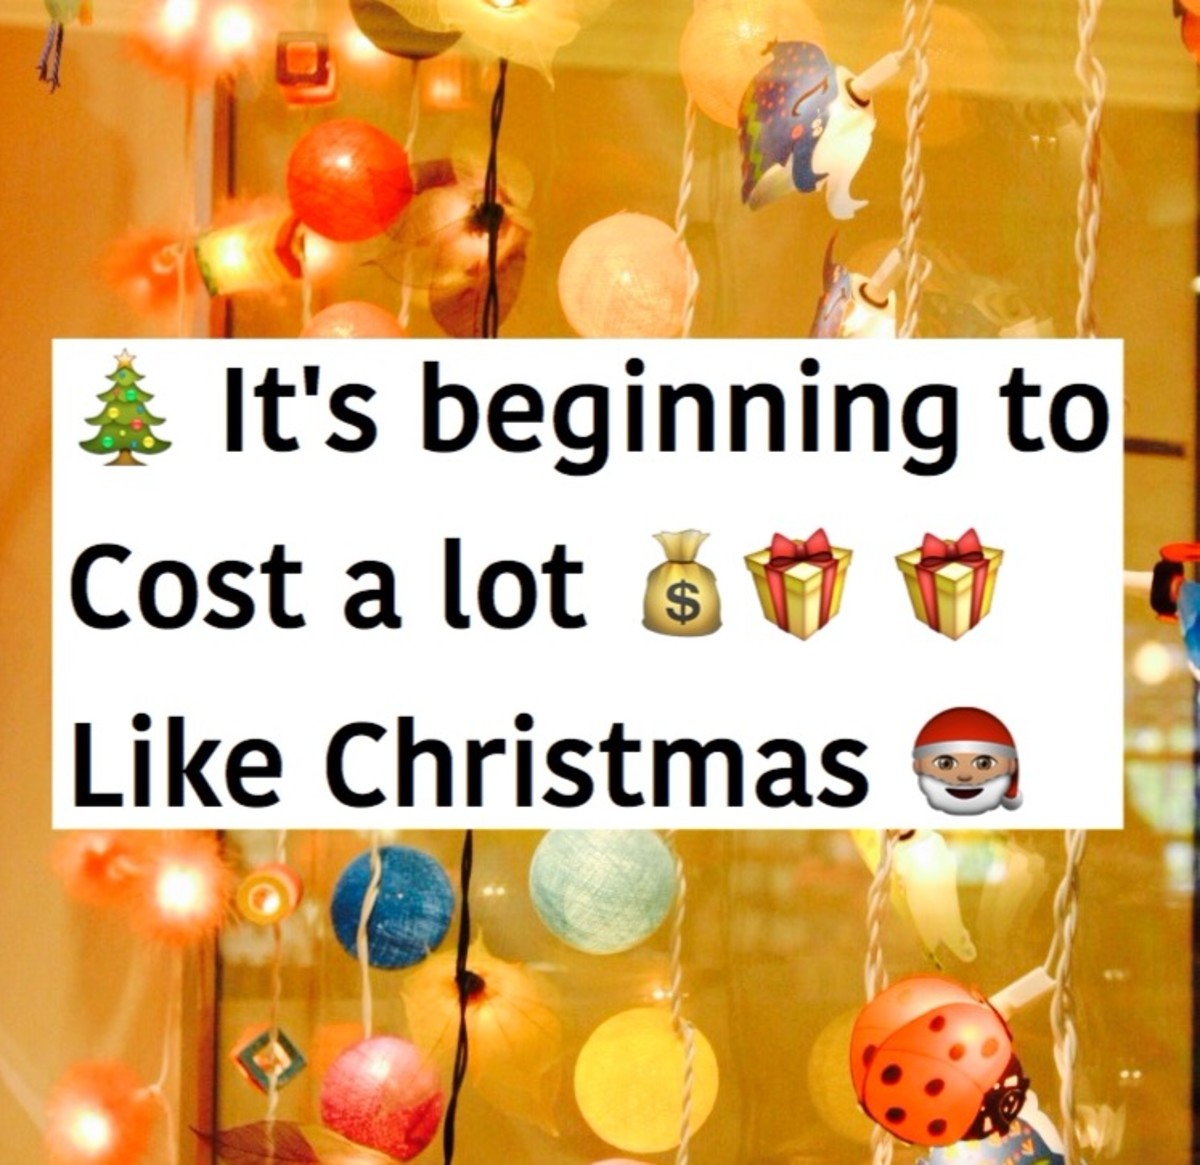 Funny Christmas Quotes And Christmas Status Updates | HubPages